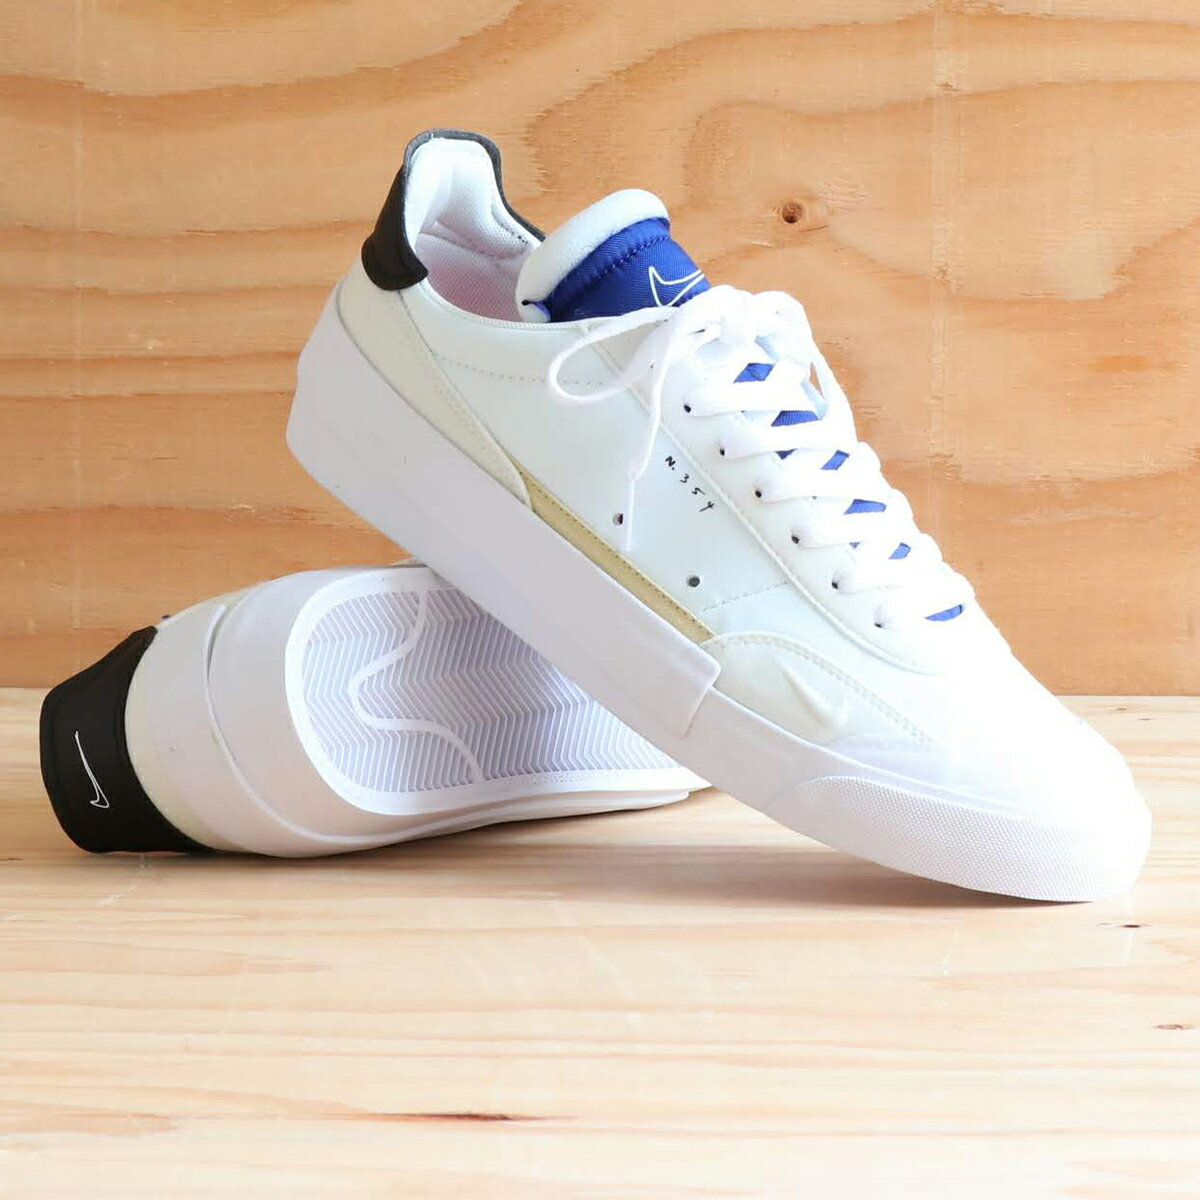 NIKE DROP-TYPE(ナイキ ドロップ タイプ)SUMMIT WHITE/BLACK-WHITE-DEEP ROYAL BLUE【メンズ スニーカー】19FA-S atpss20画像